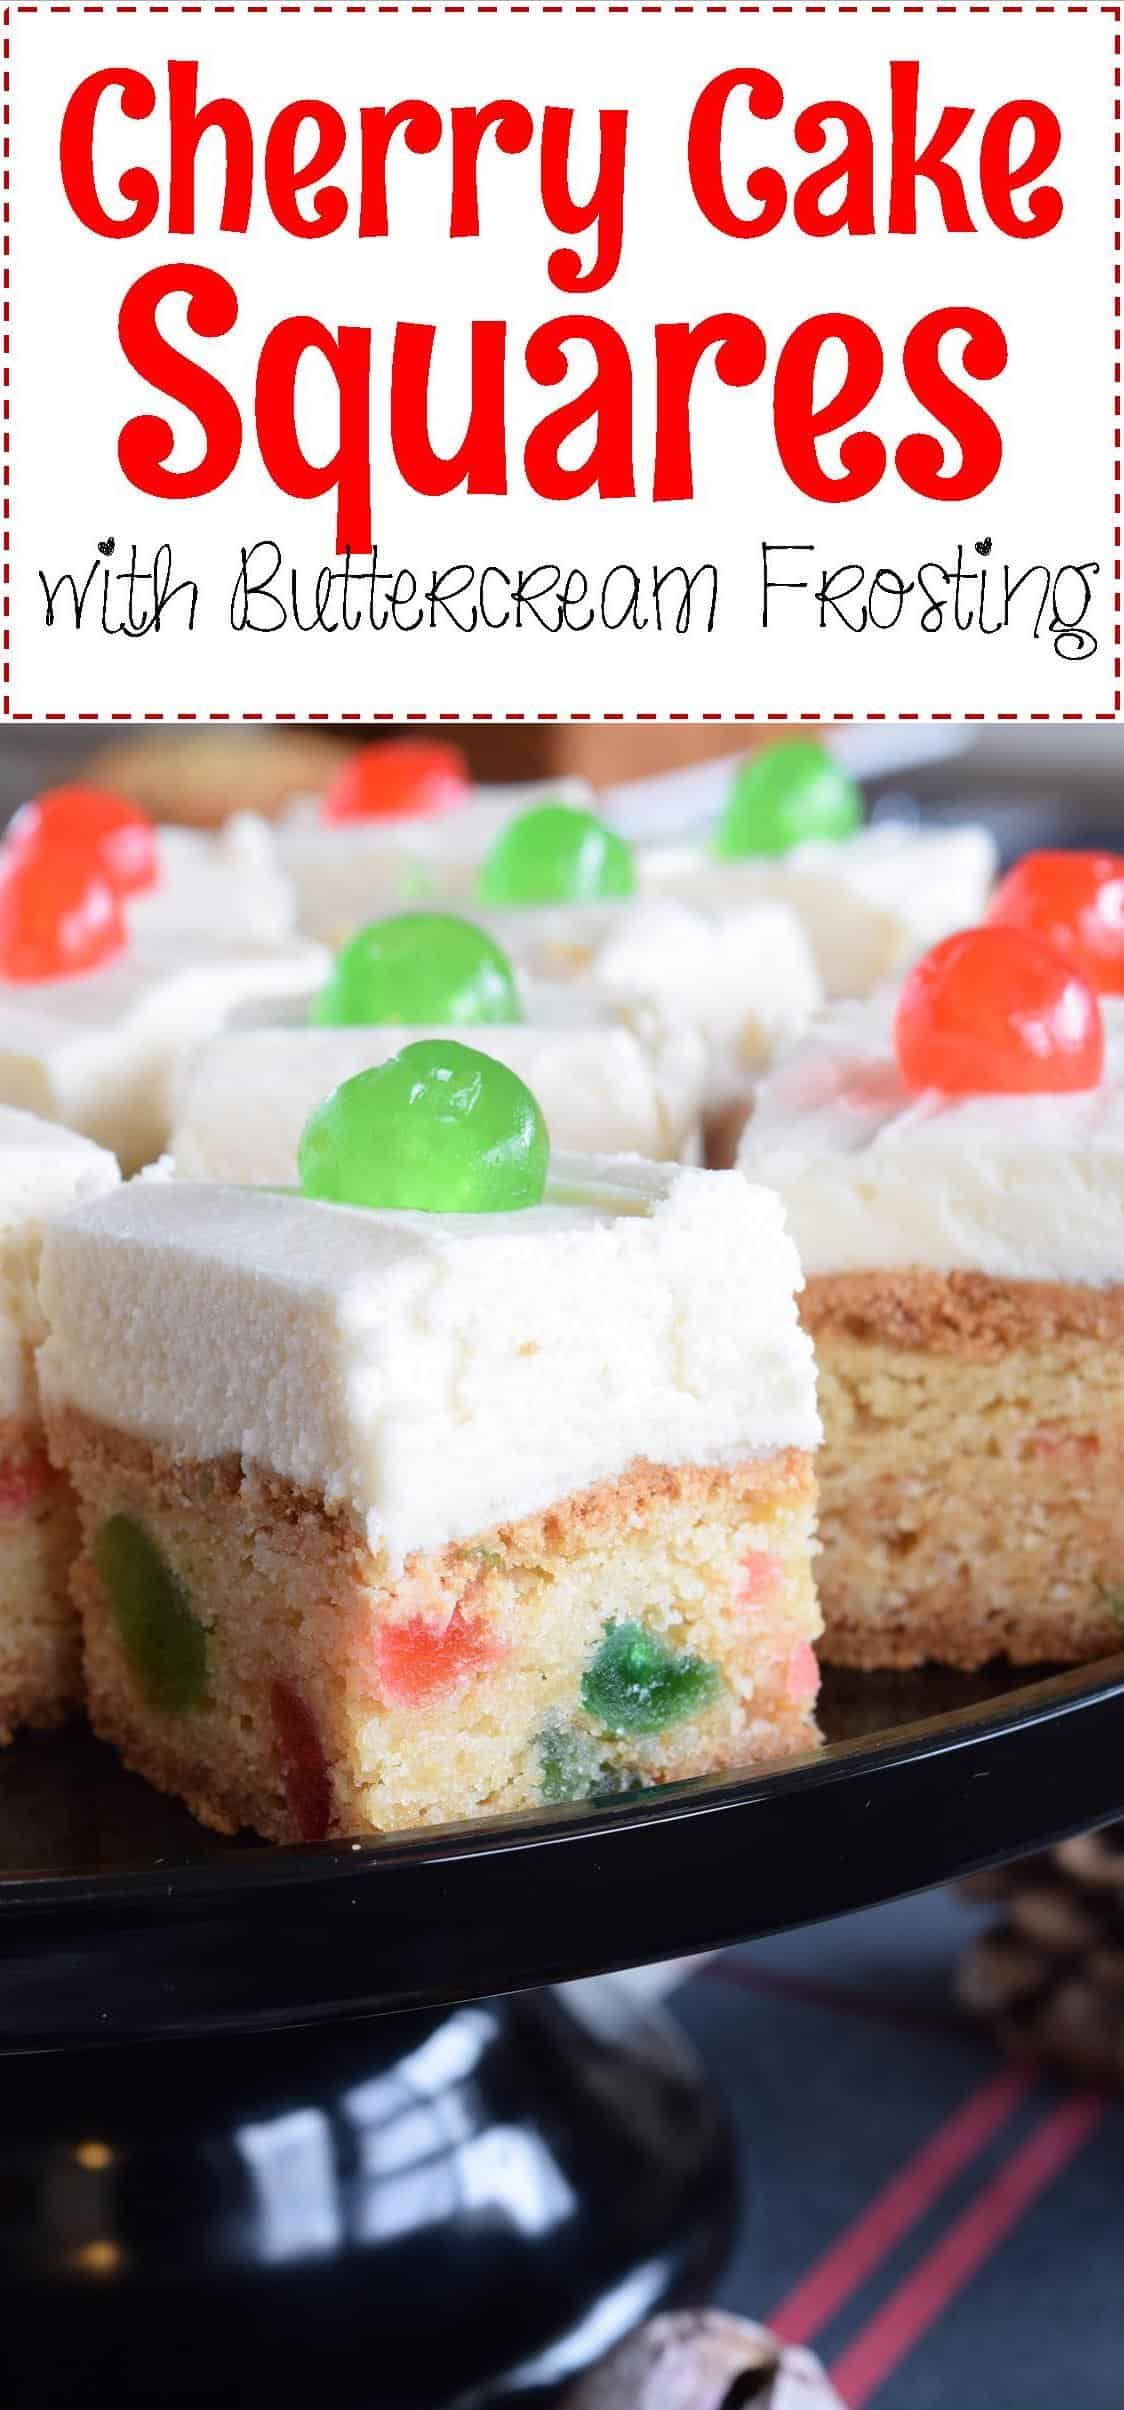 Cherry cake squares with buttercream frosting lord byrons kitchen a christmas treat thats perfect for sharing but so delicious youll want to keep them all for yourself solutioingenieria Choice Image